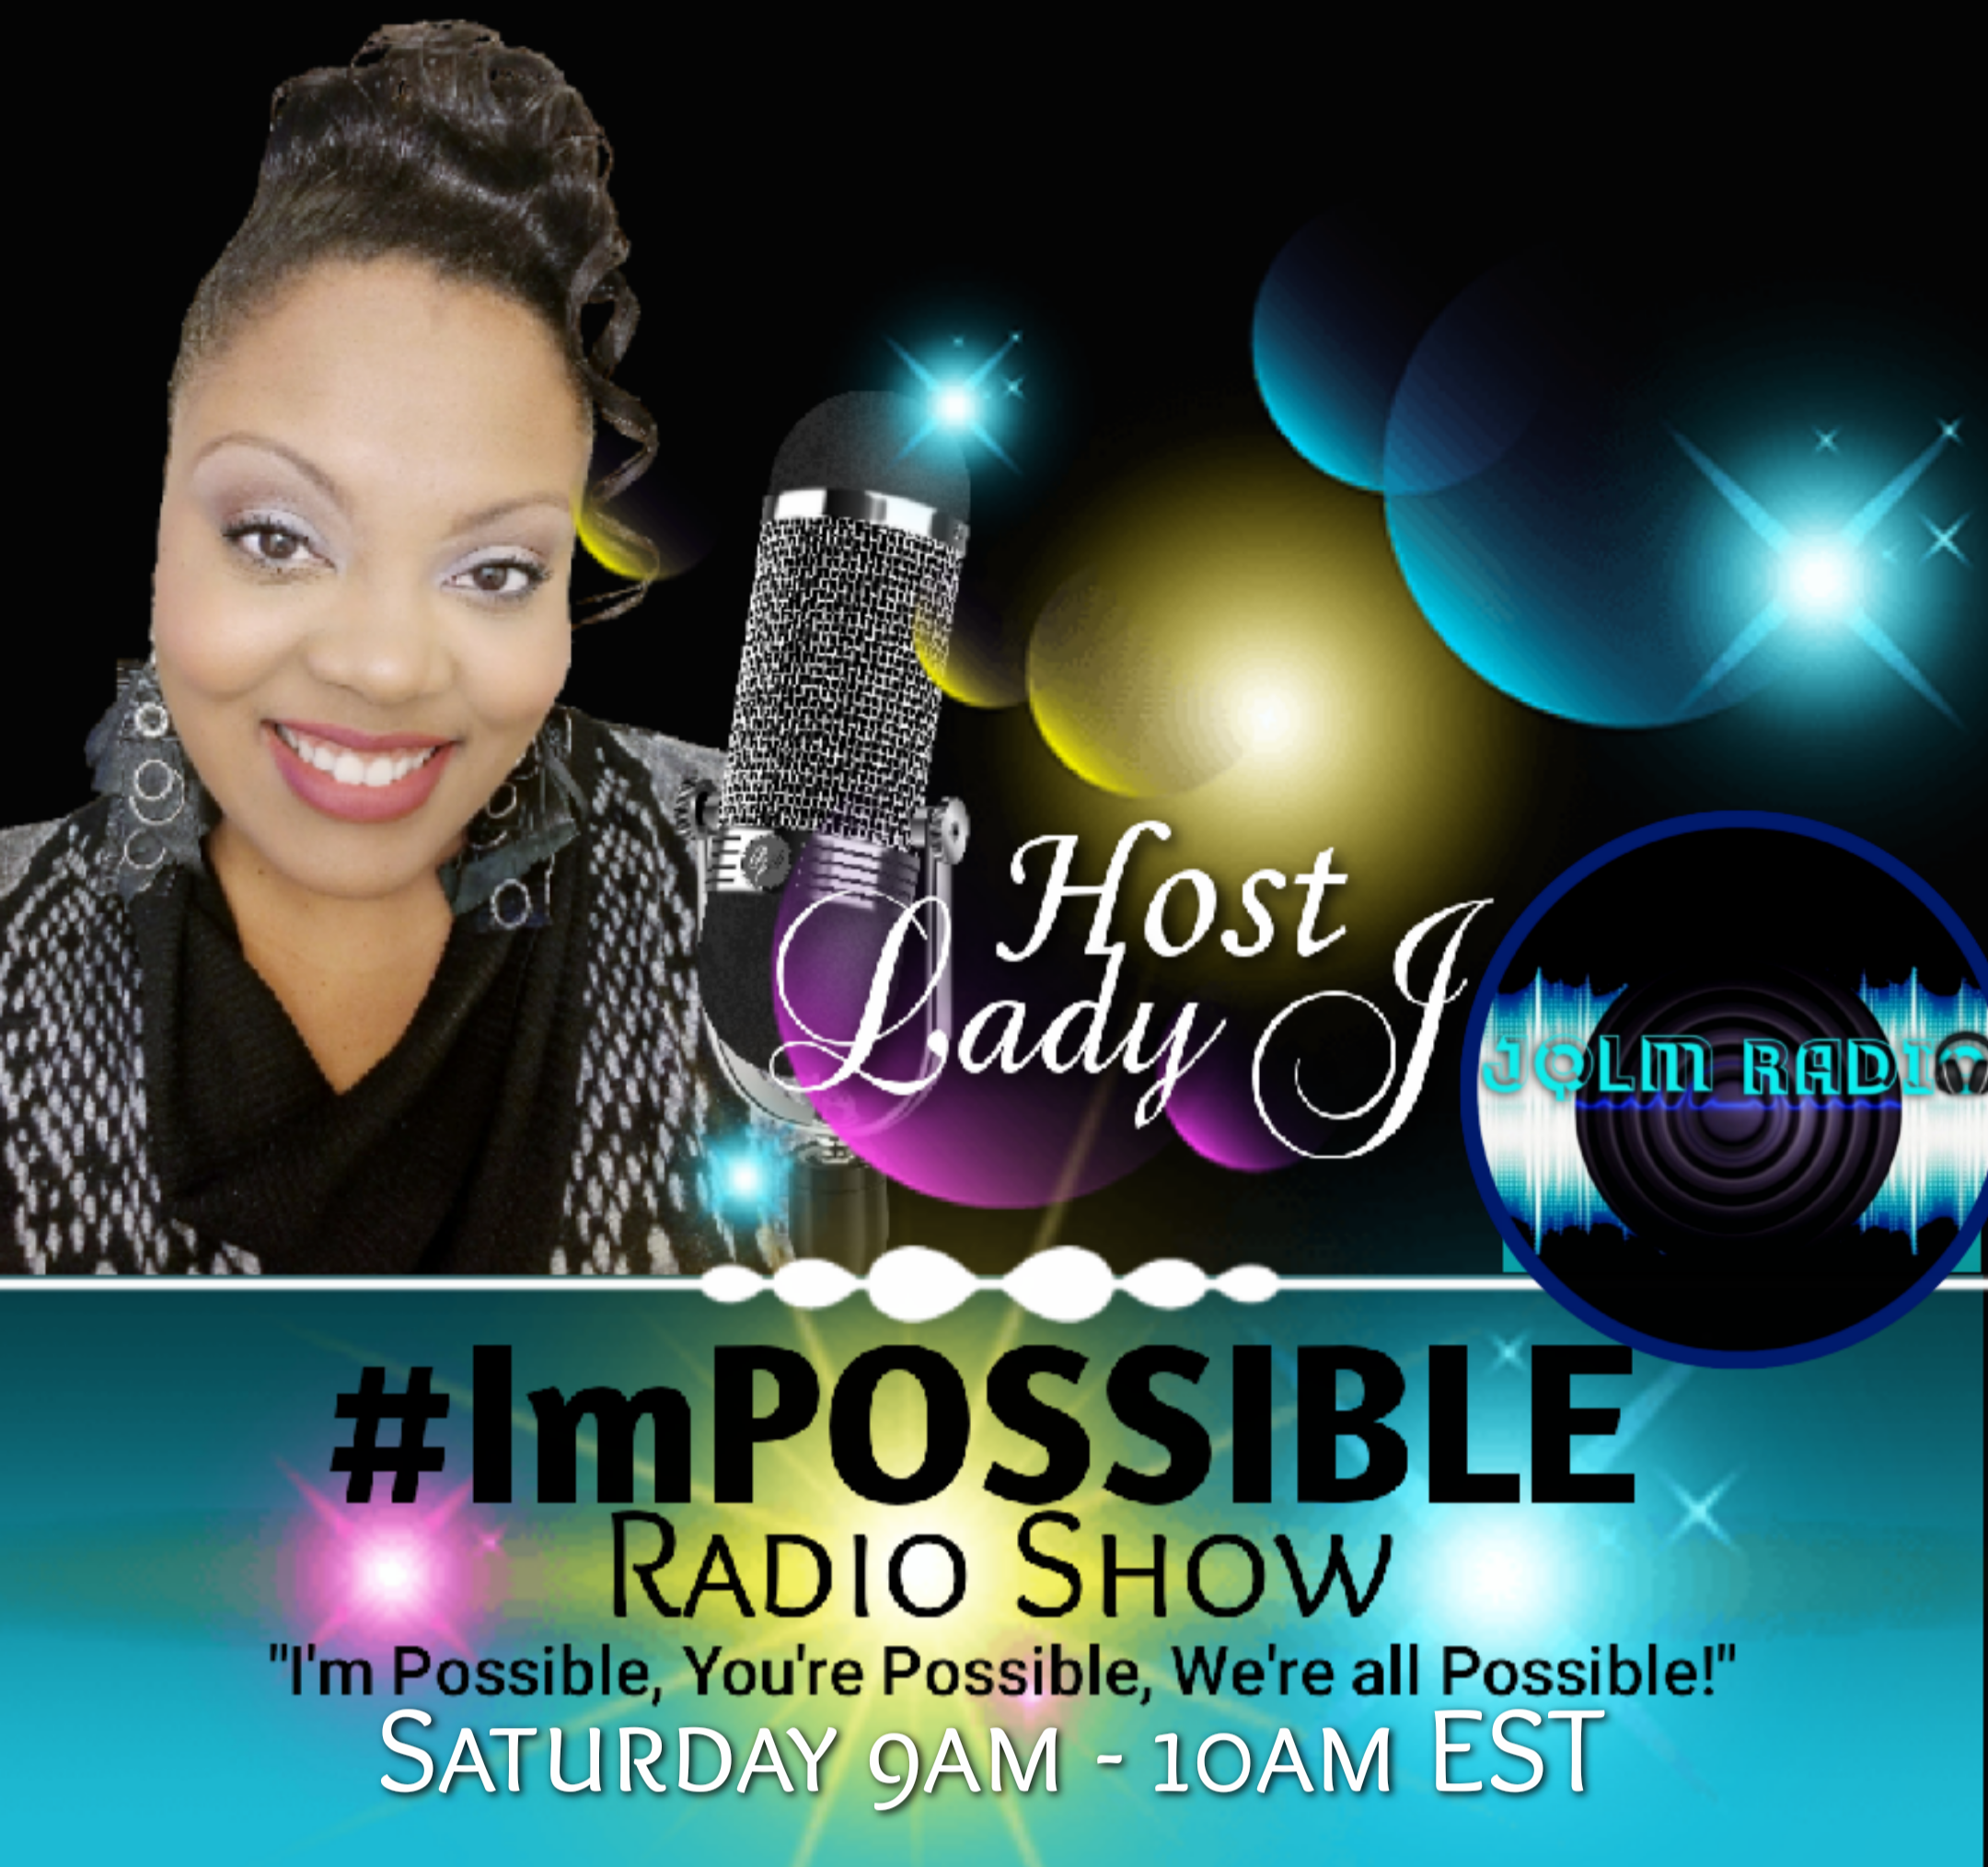 #ImPOSSIBLE RADIO SHOW